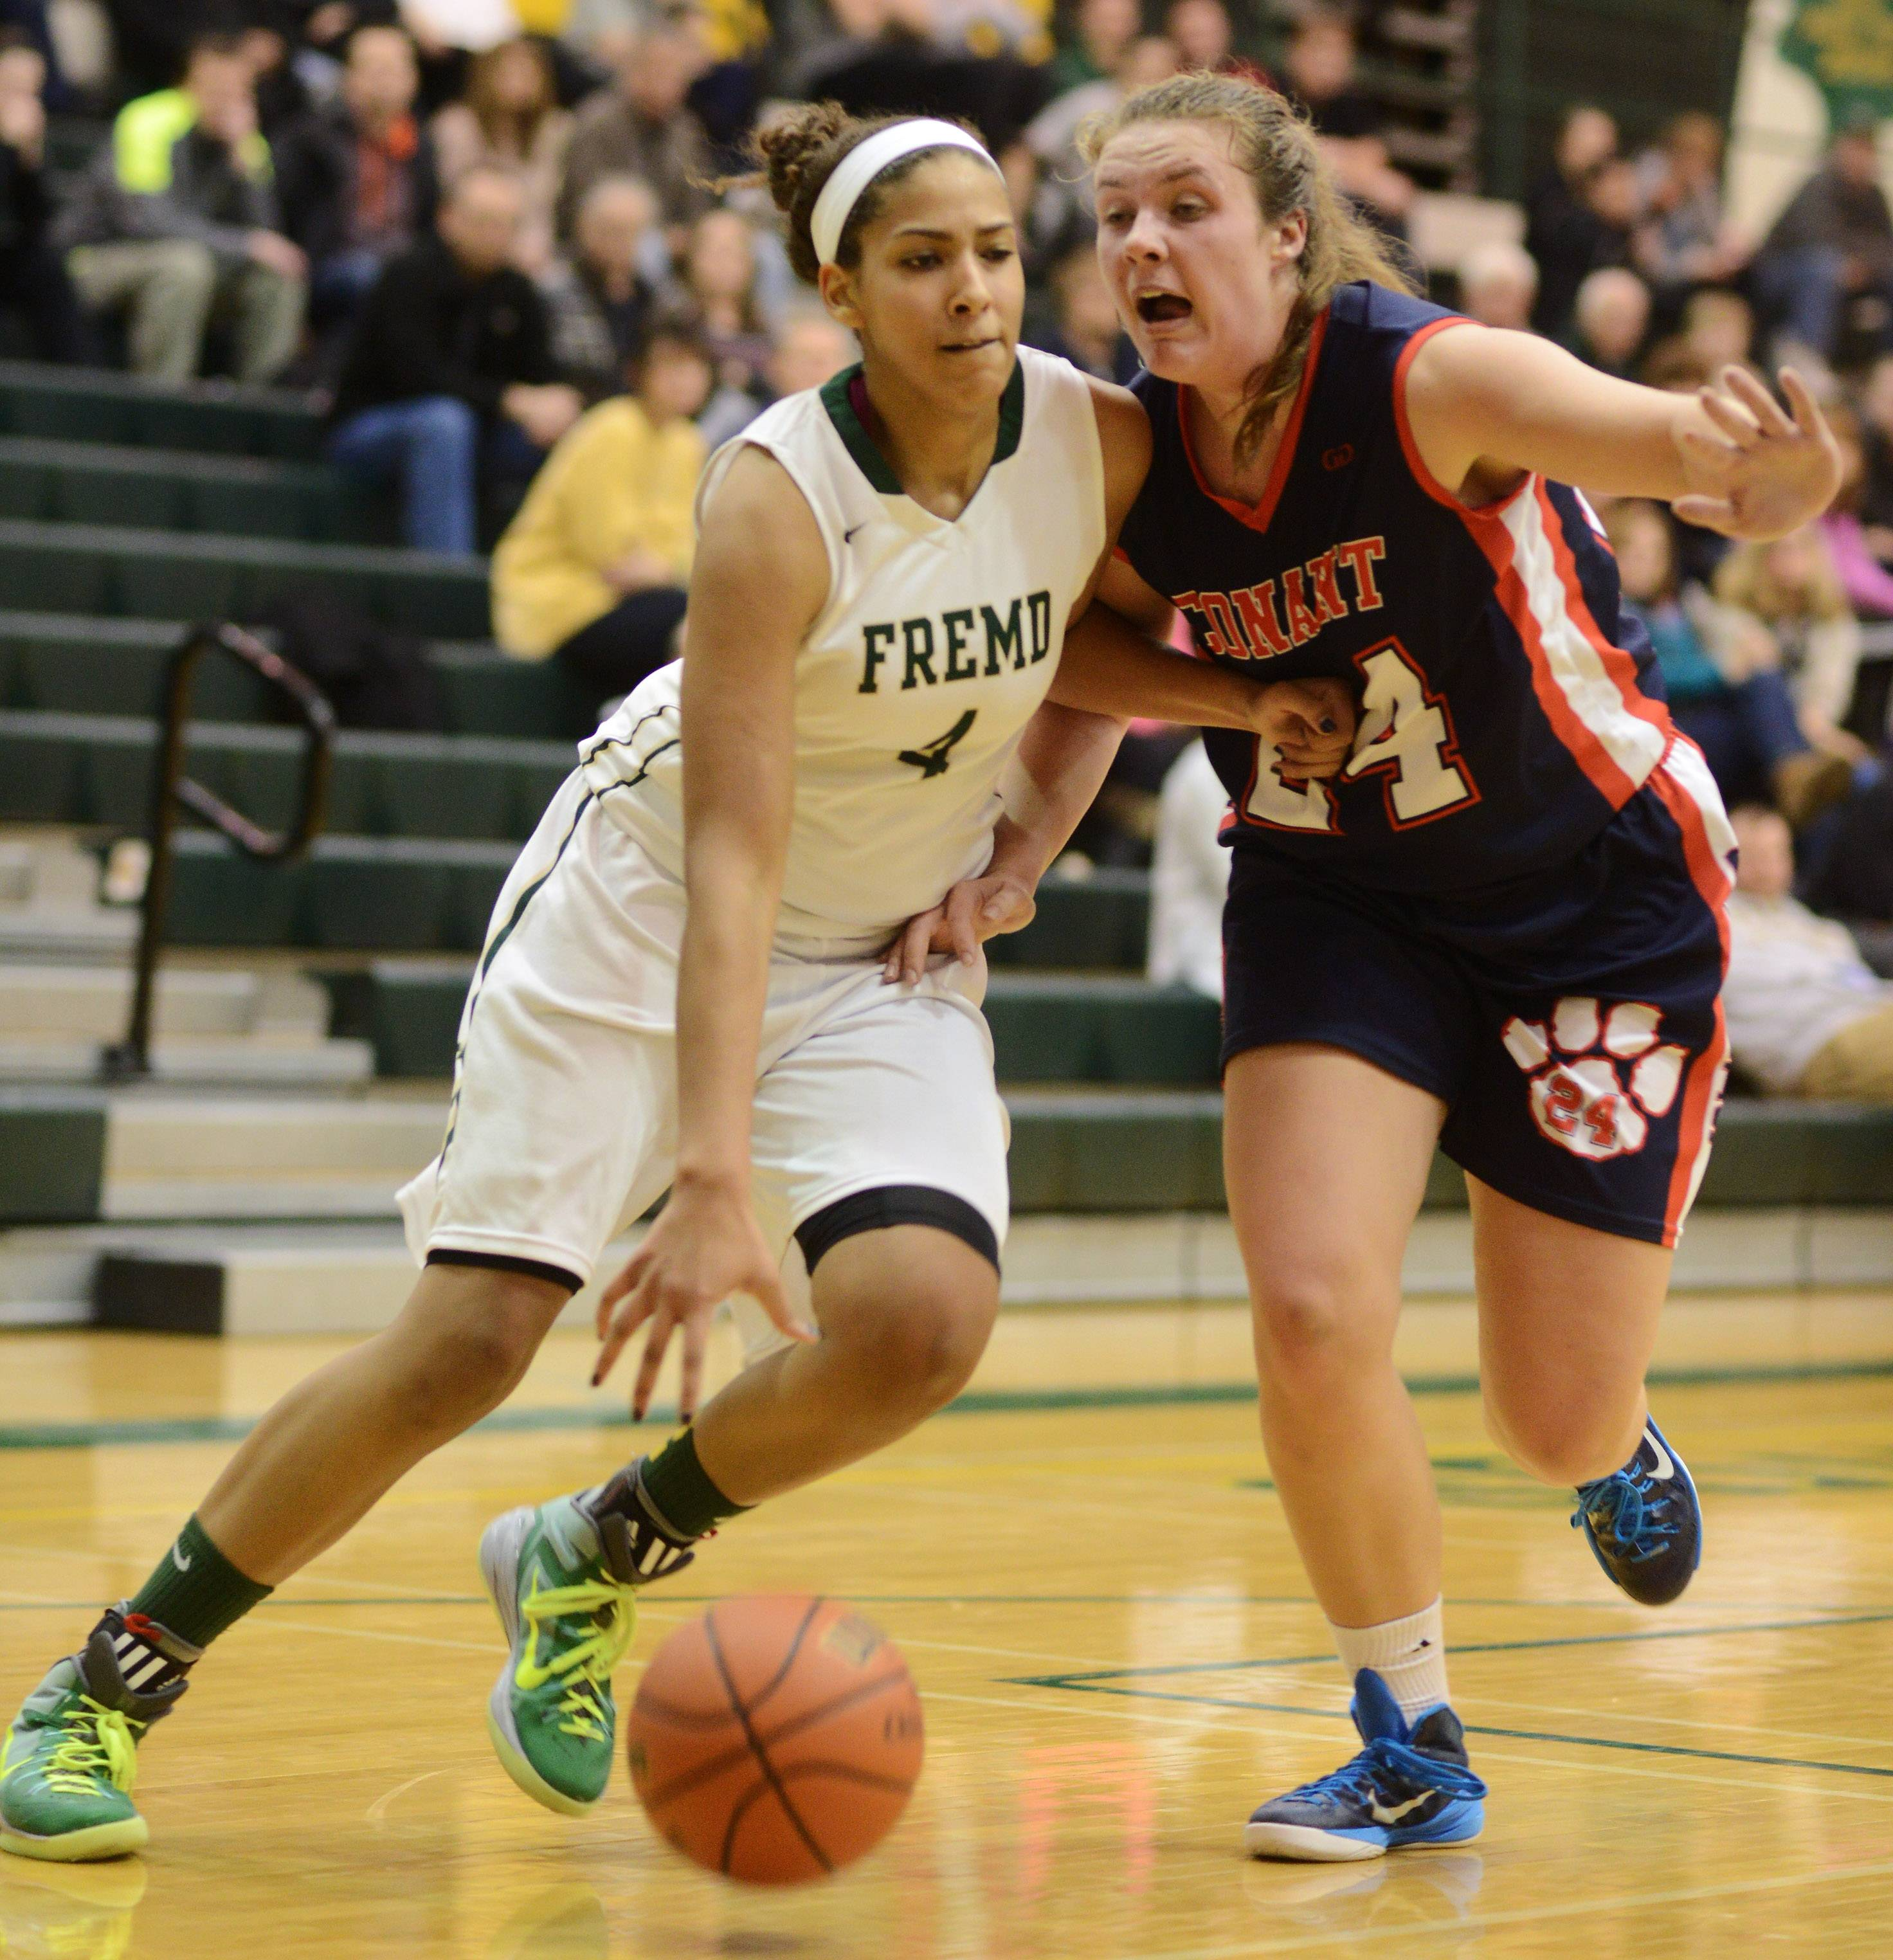 In fine form, Fremd turns away Conant